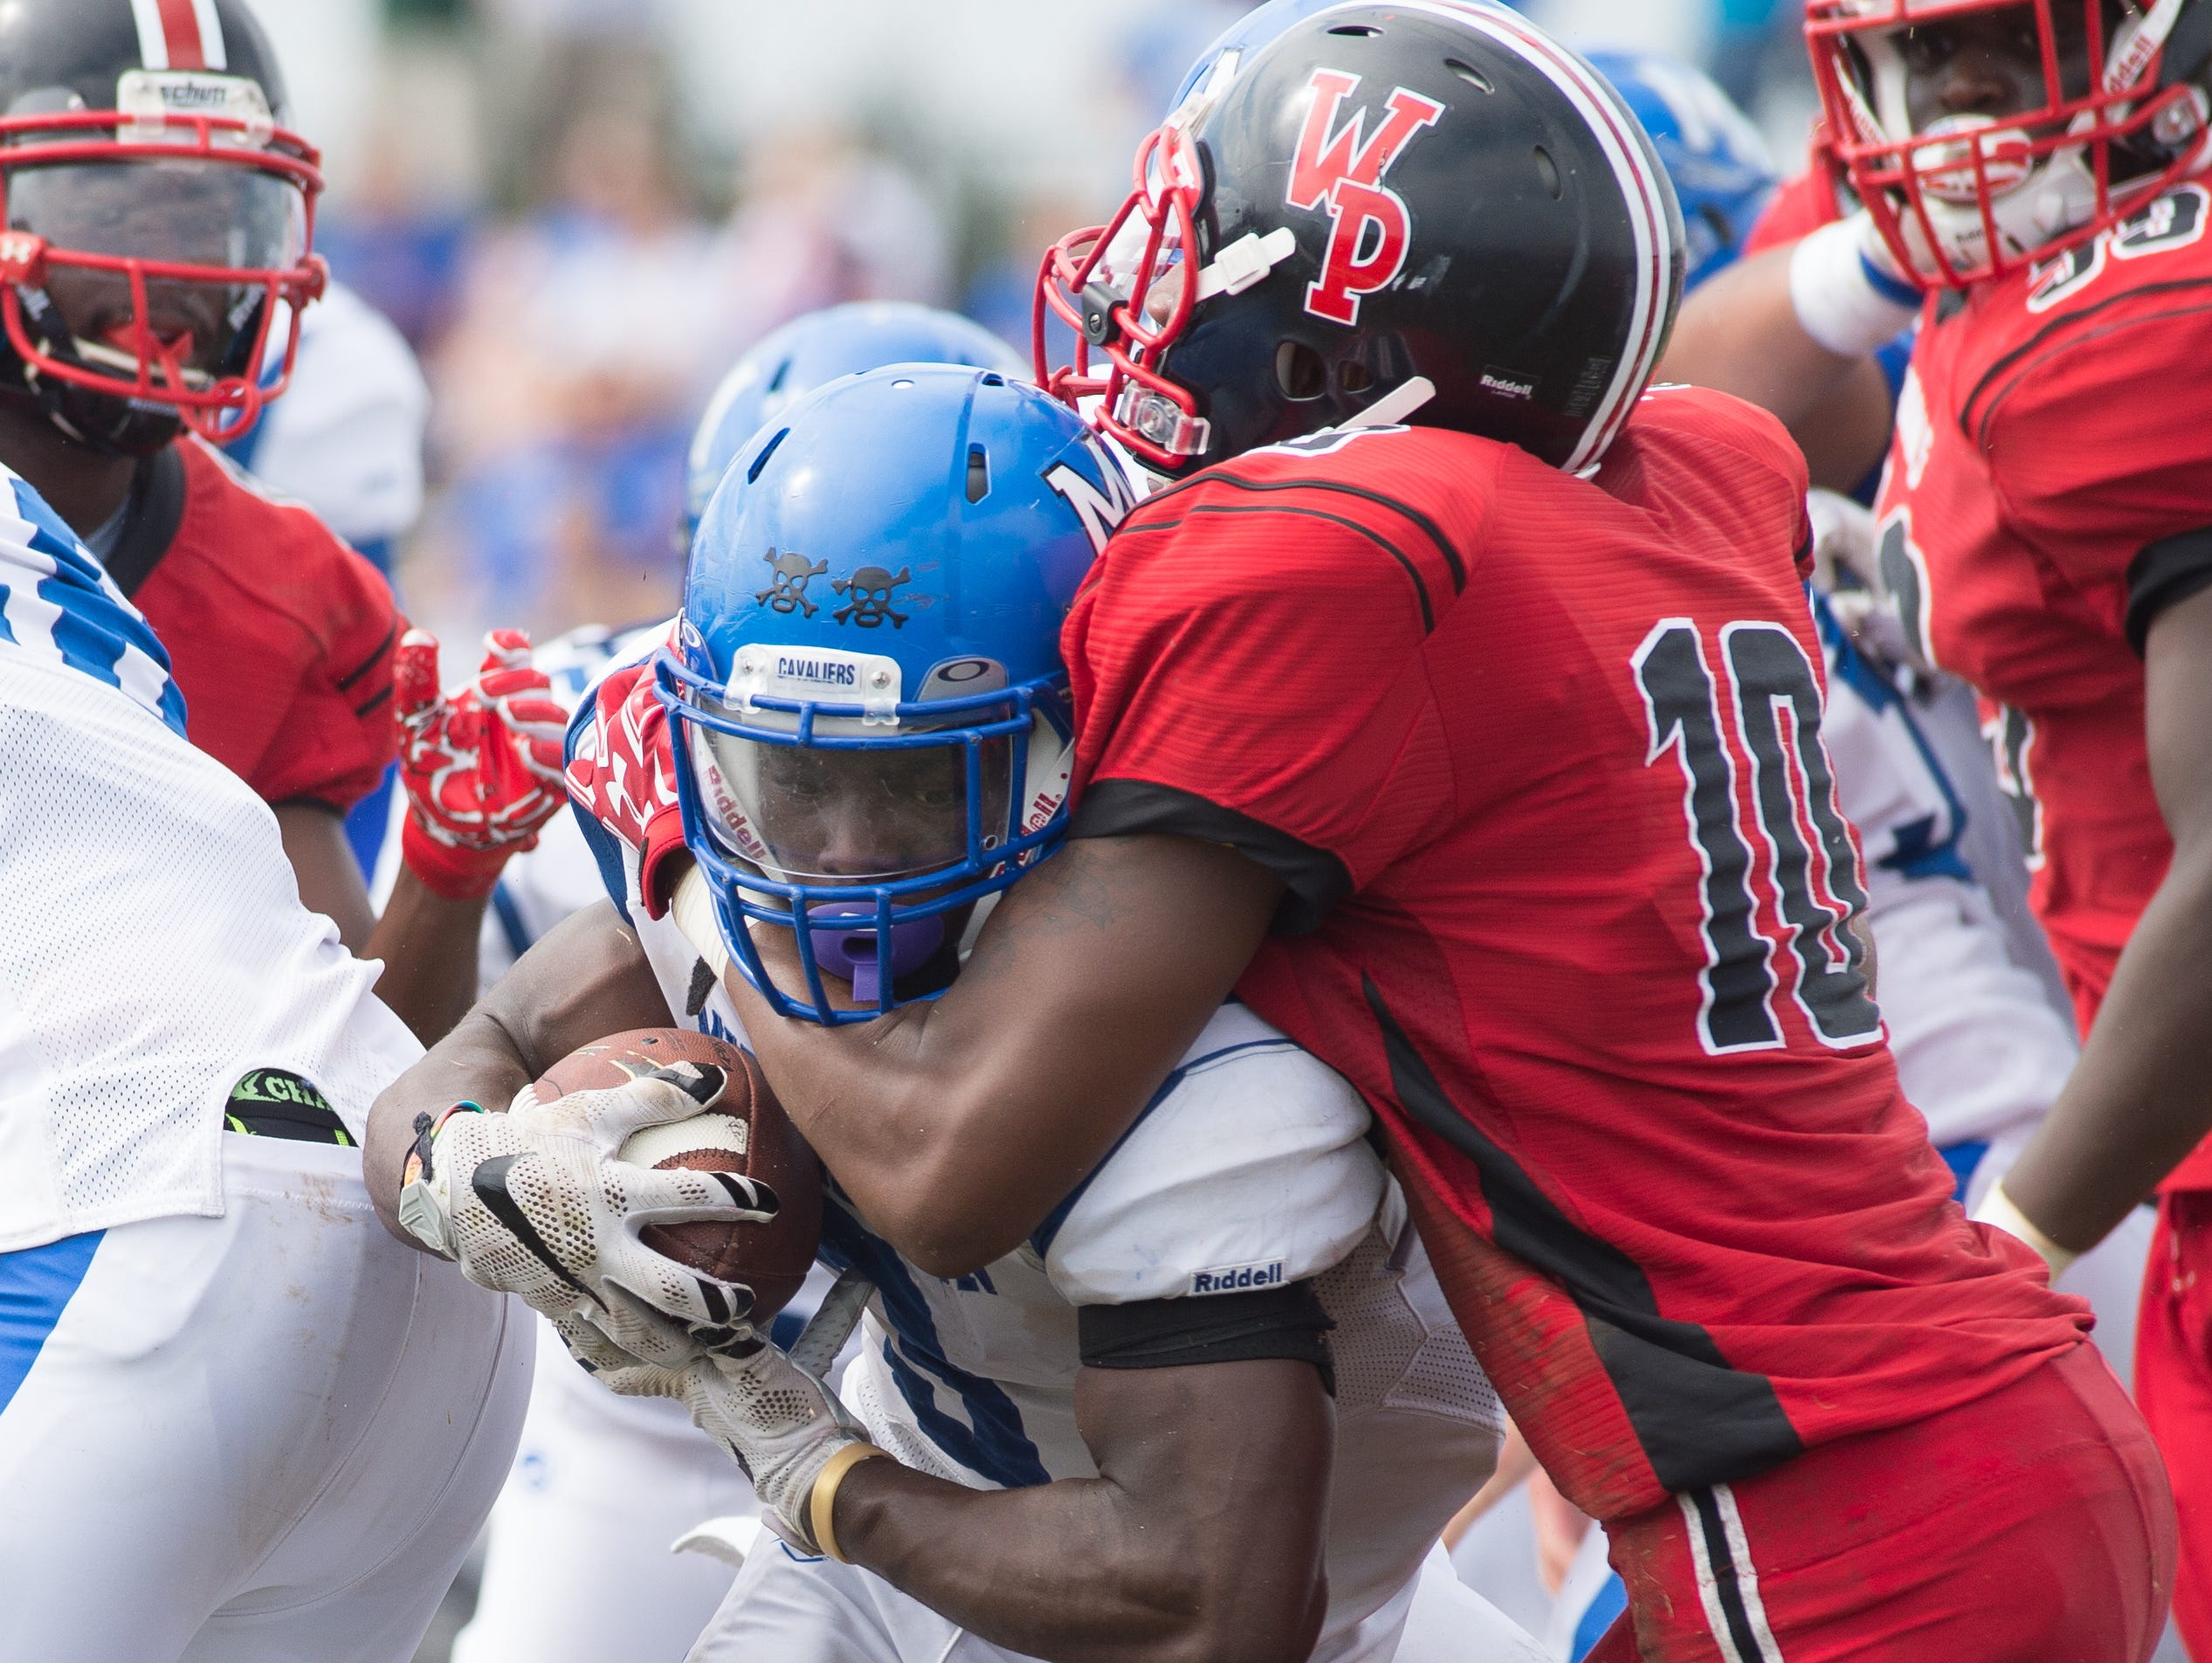 Middletown's Kedrick Whitehead (3) with a touchdown run to make the score 19-0 in their game against William Penn.